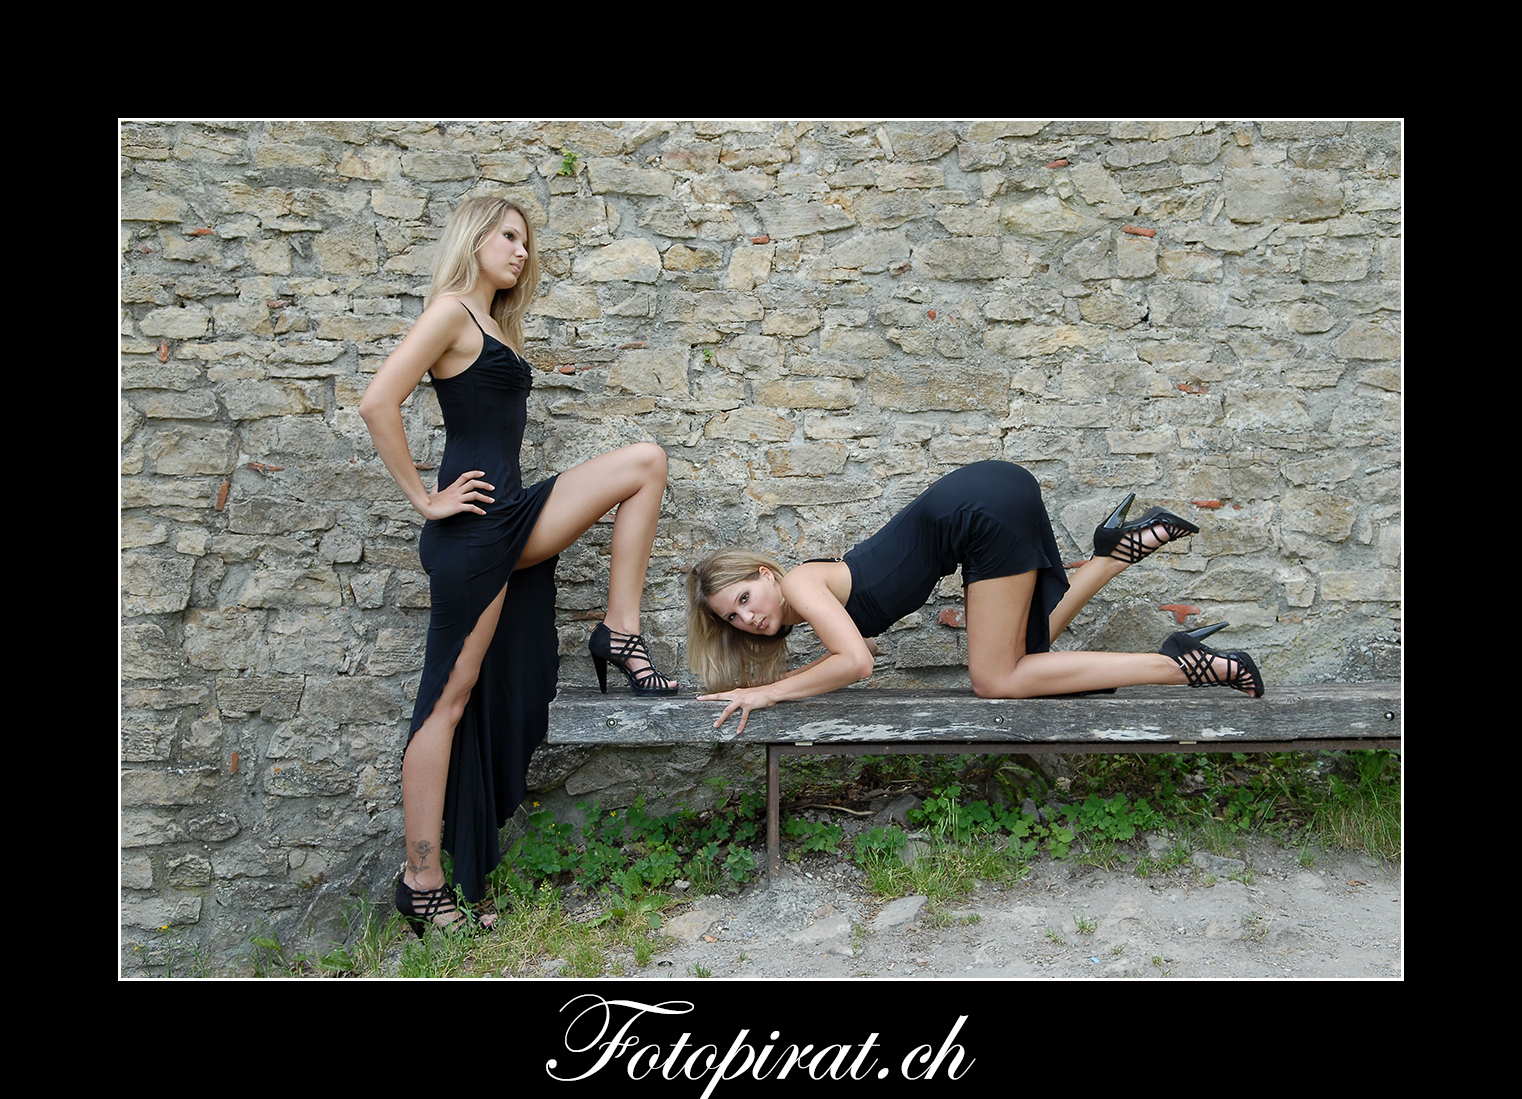 Fotoshooting, On Location, Ballkleid, Modelagentur, Fotomodel, Sportmodel, blond